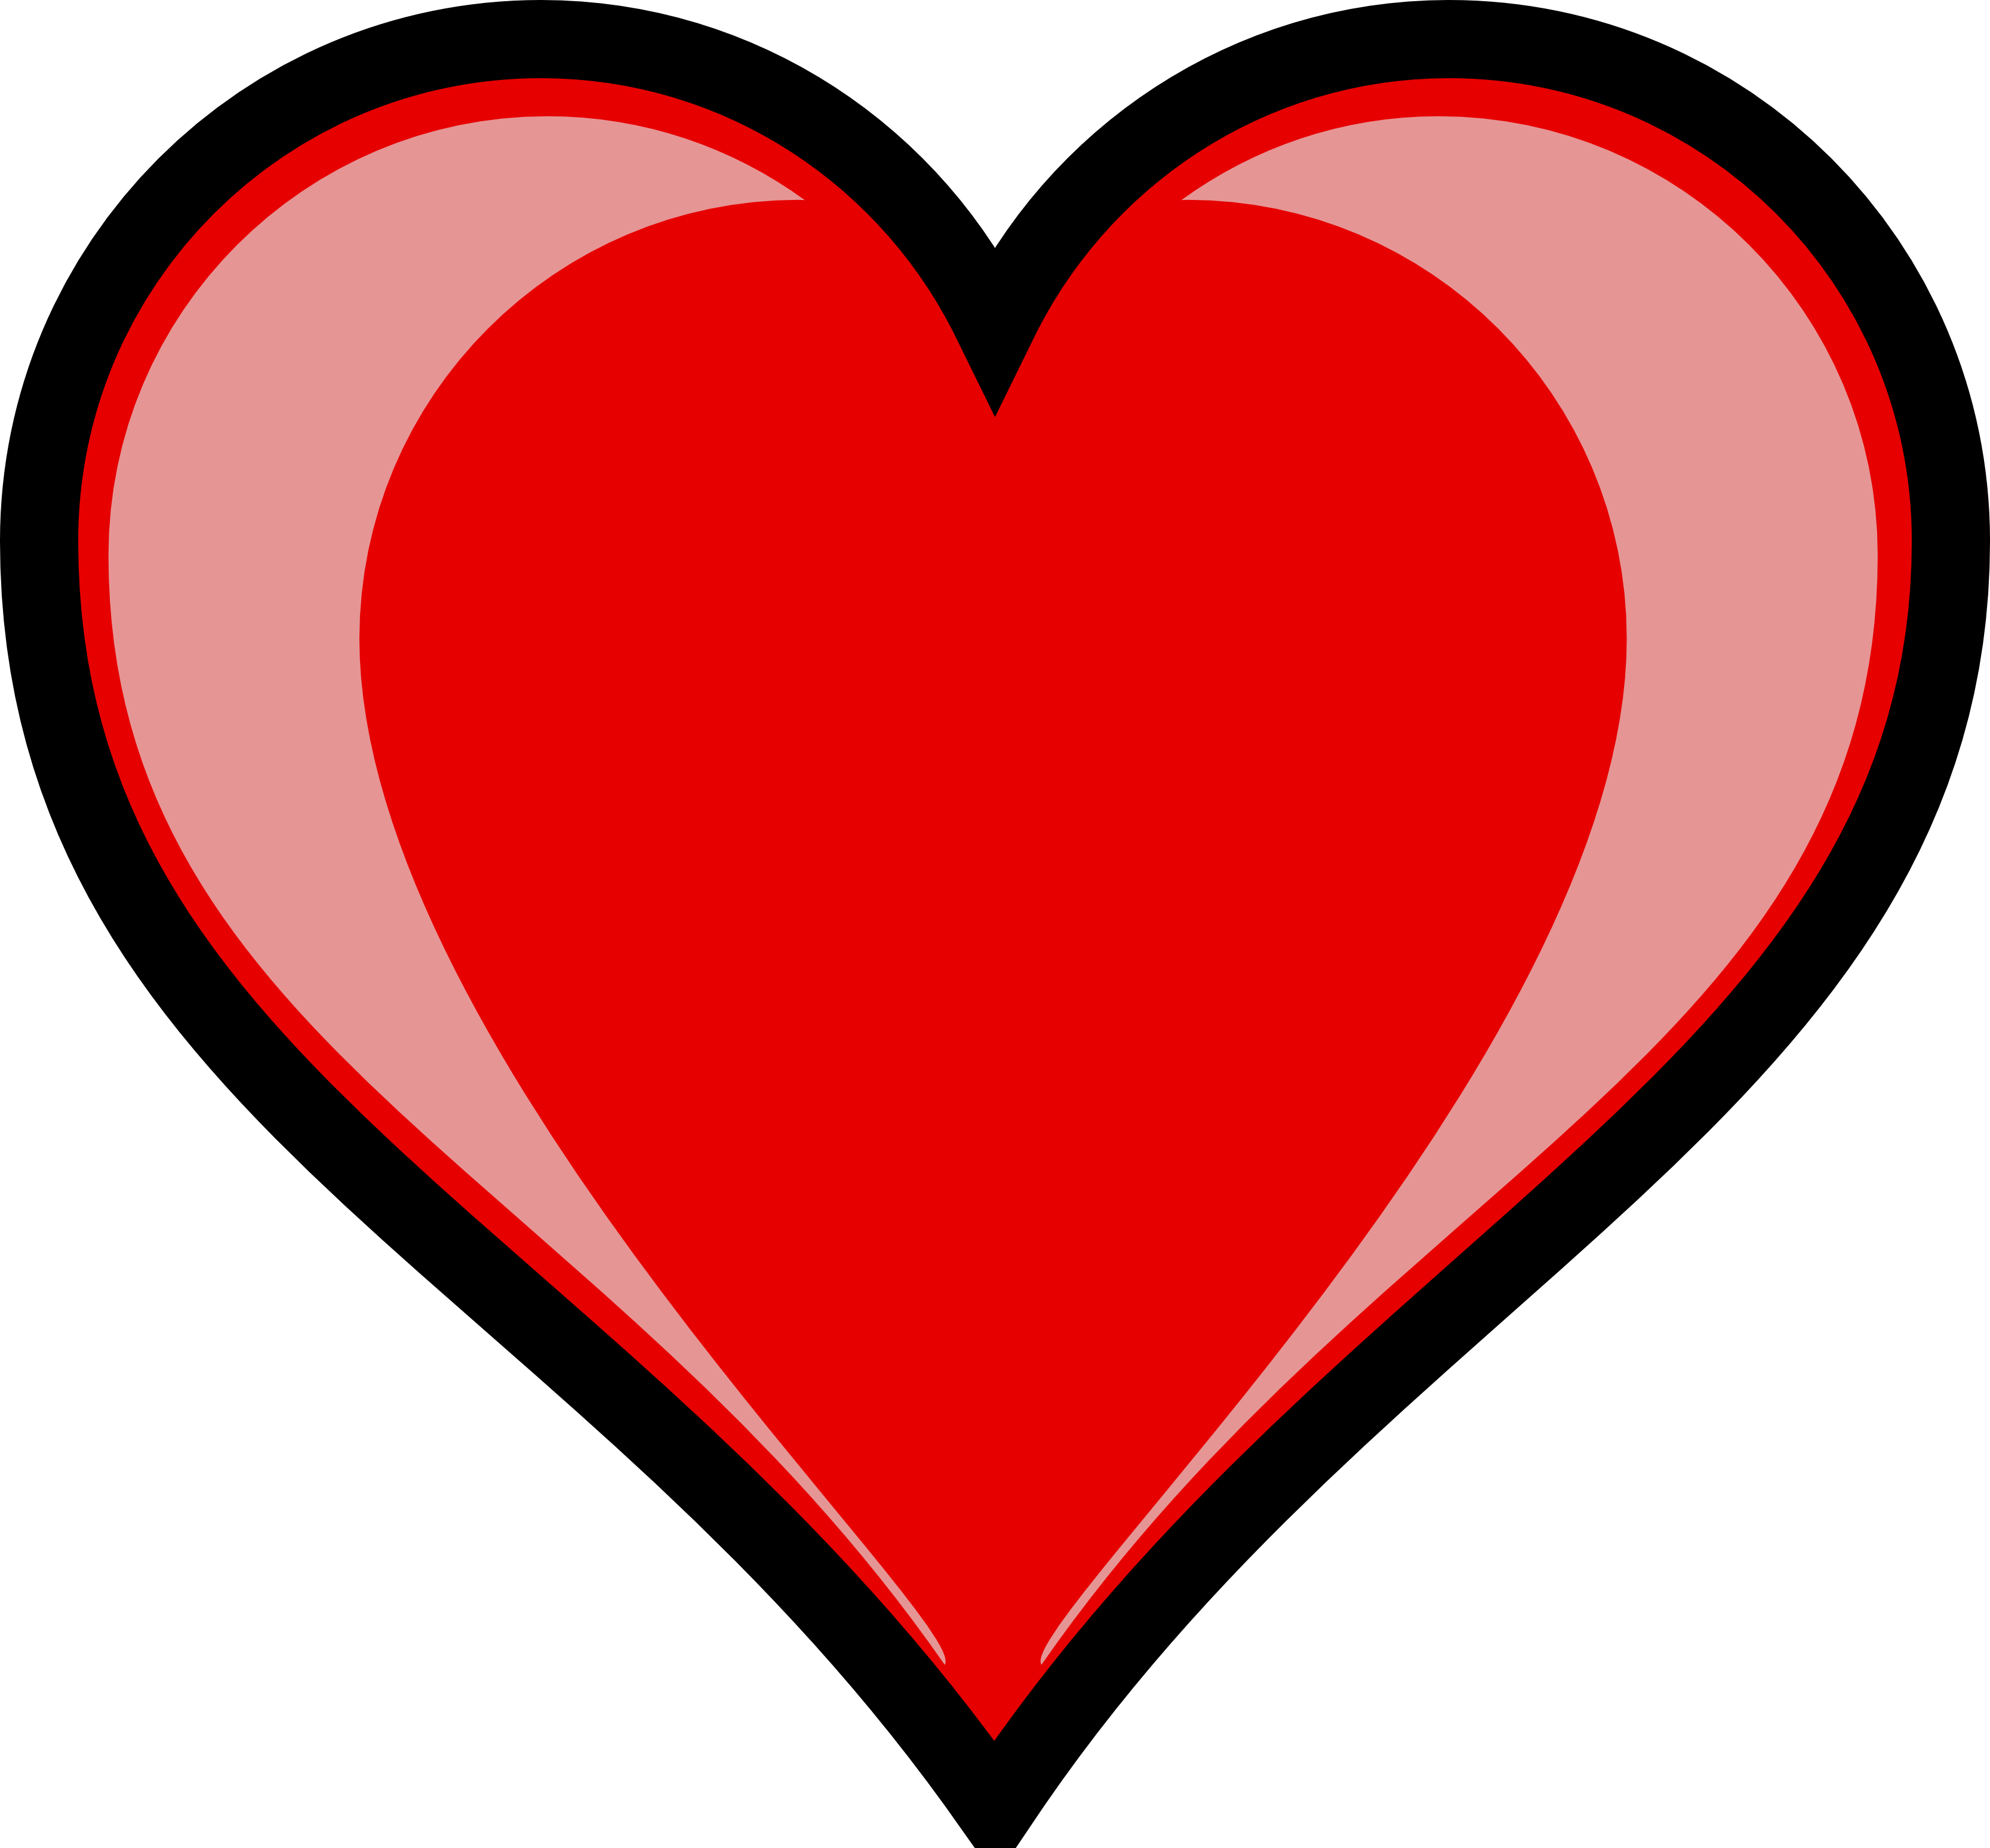 Garland Valentine Pictures Of Hearts Www Imgkid Com The Image